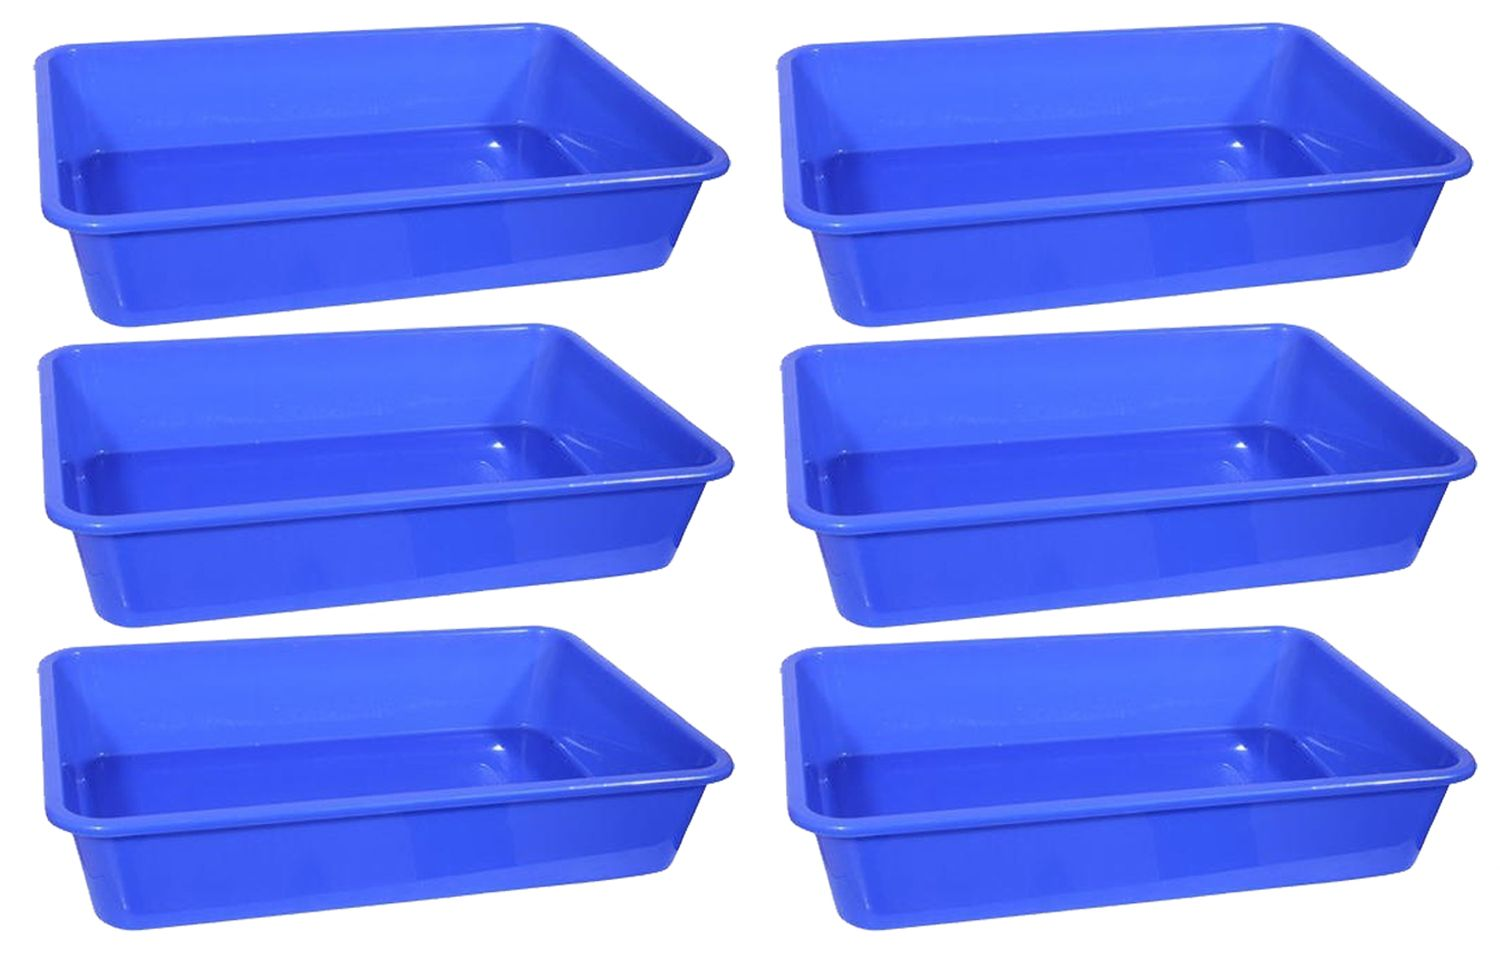 Kuber Industries Plastic Big size Fruit/Vegetable/Stationary Tray (Assorted) Set of 6 Pcs